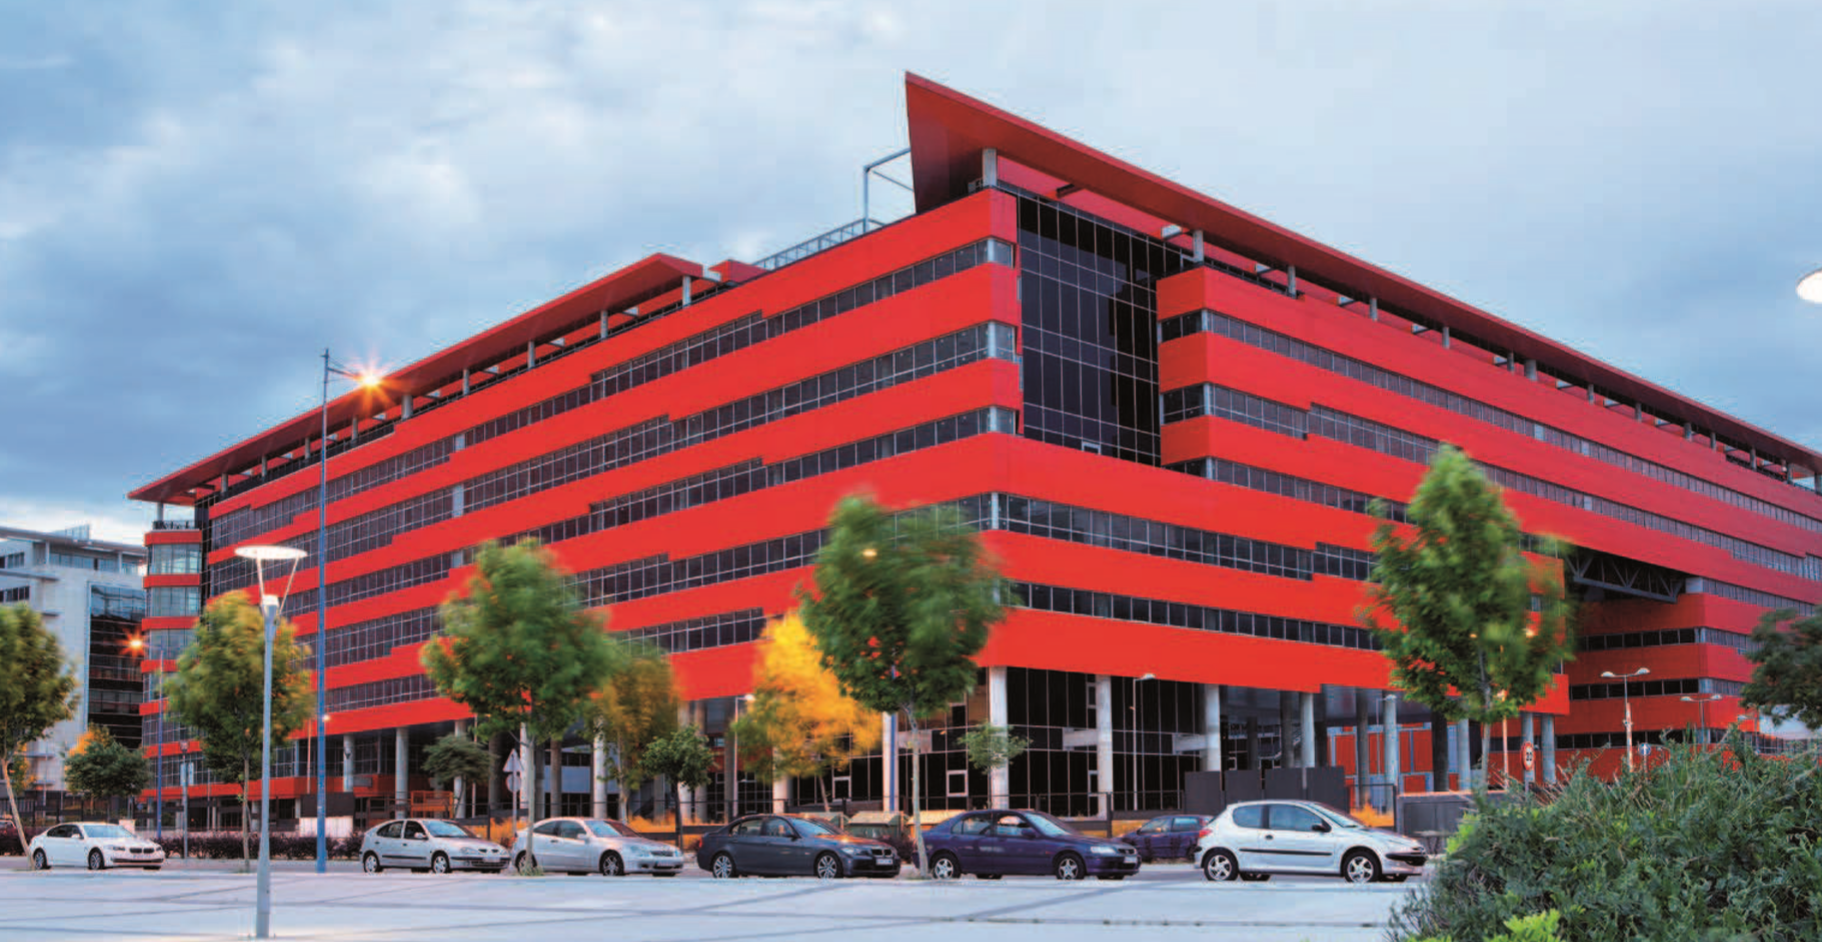 SILICIUS signs another non-monetary contribution, a 45,100 sqm office building in Madrid with 1,200 parking lots